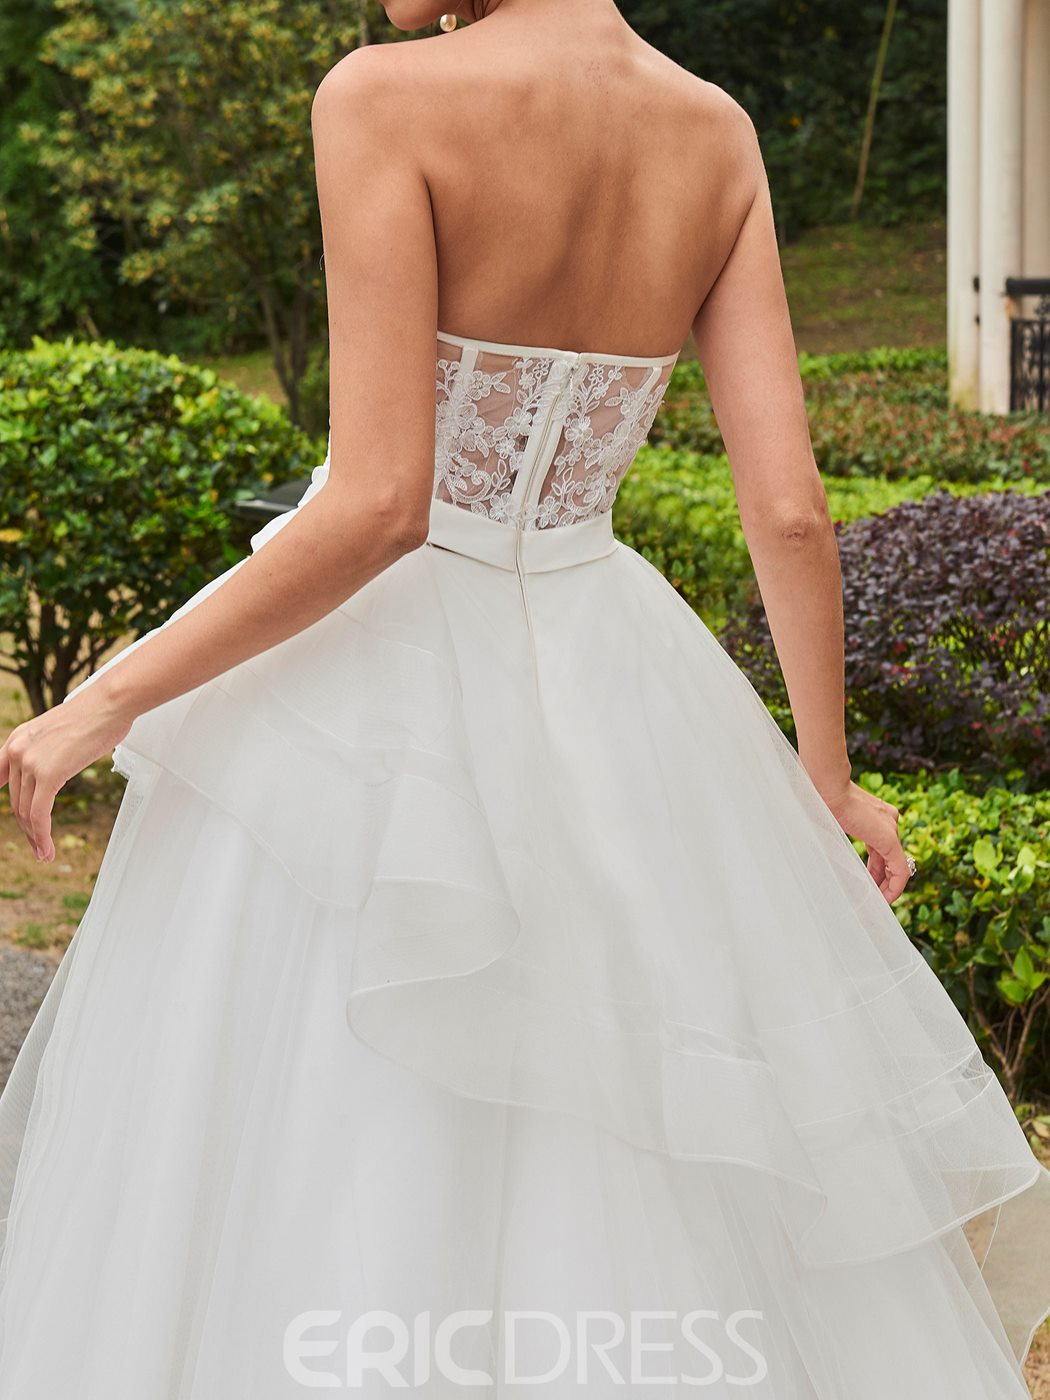 Ericdress Amazing Sweetheart Appliques A Line Garden Wedding Dress